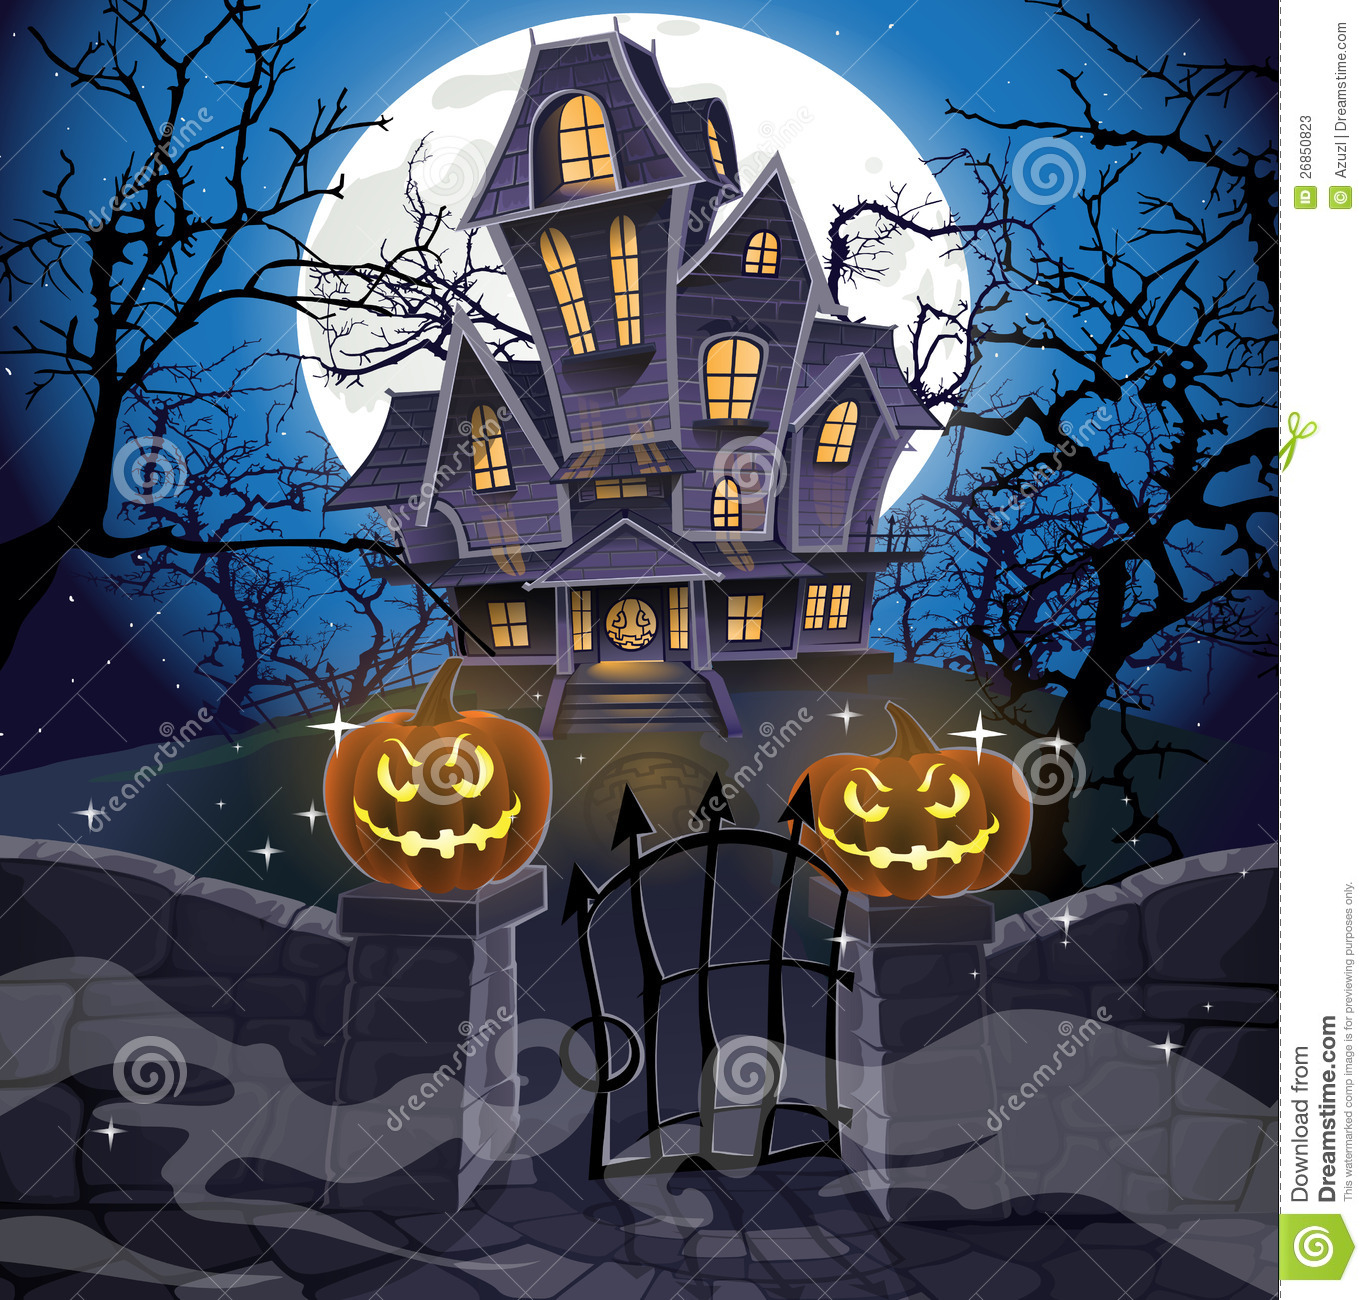 Halloween Home Decor Ideas: Happy Halloween Cozy Haunted House Stock Vector